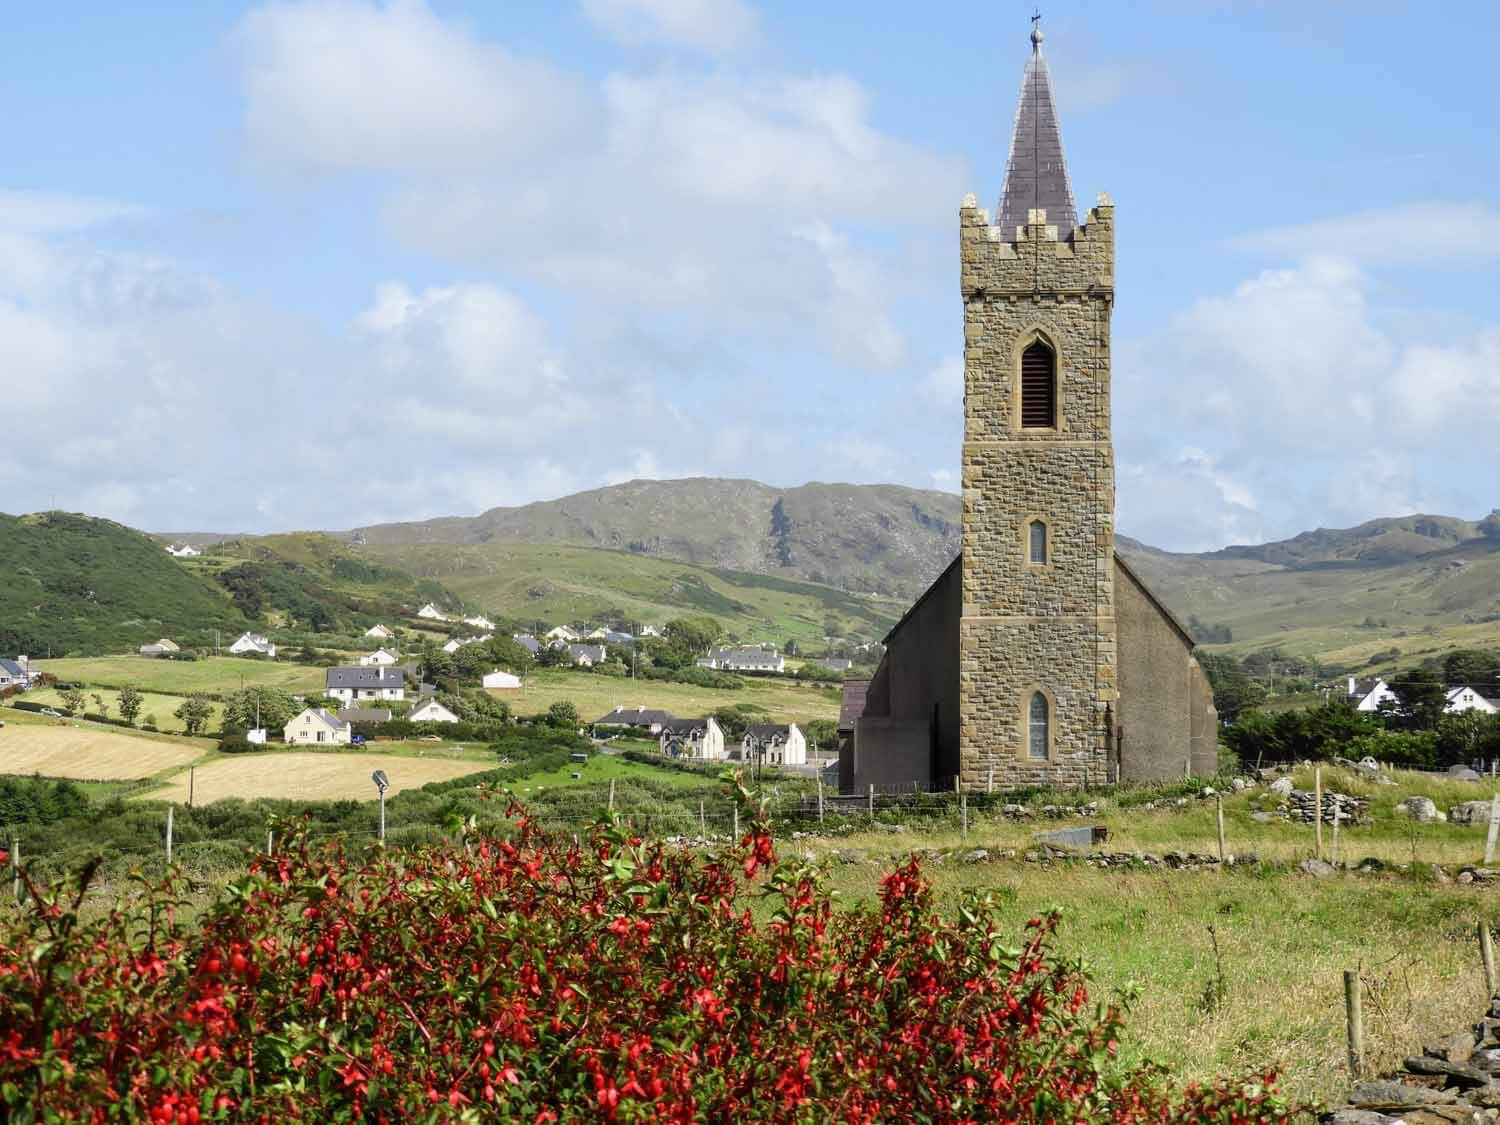 ireland-donegal-glencolumbkille-gleann-cholm-cille-church-flowers.jpg